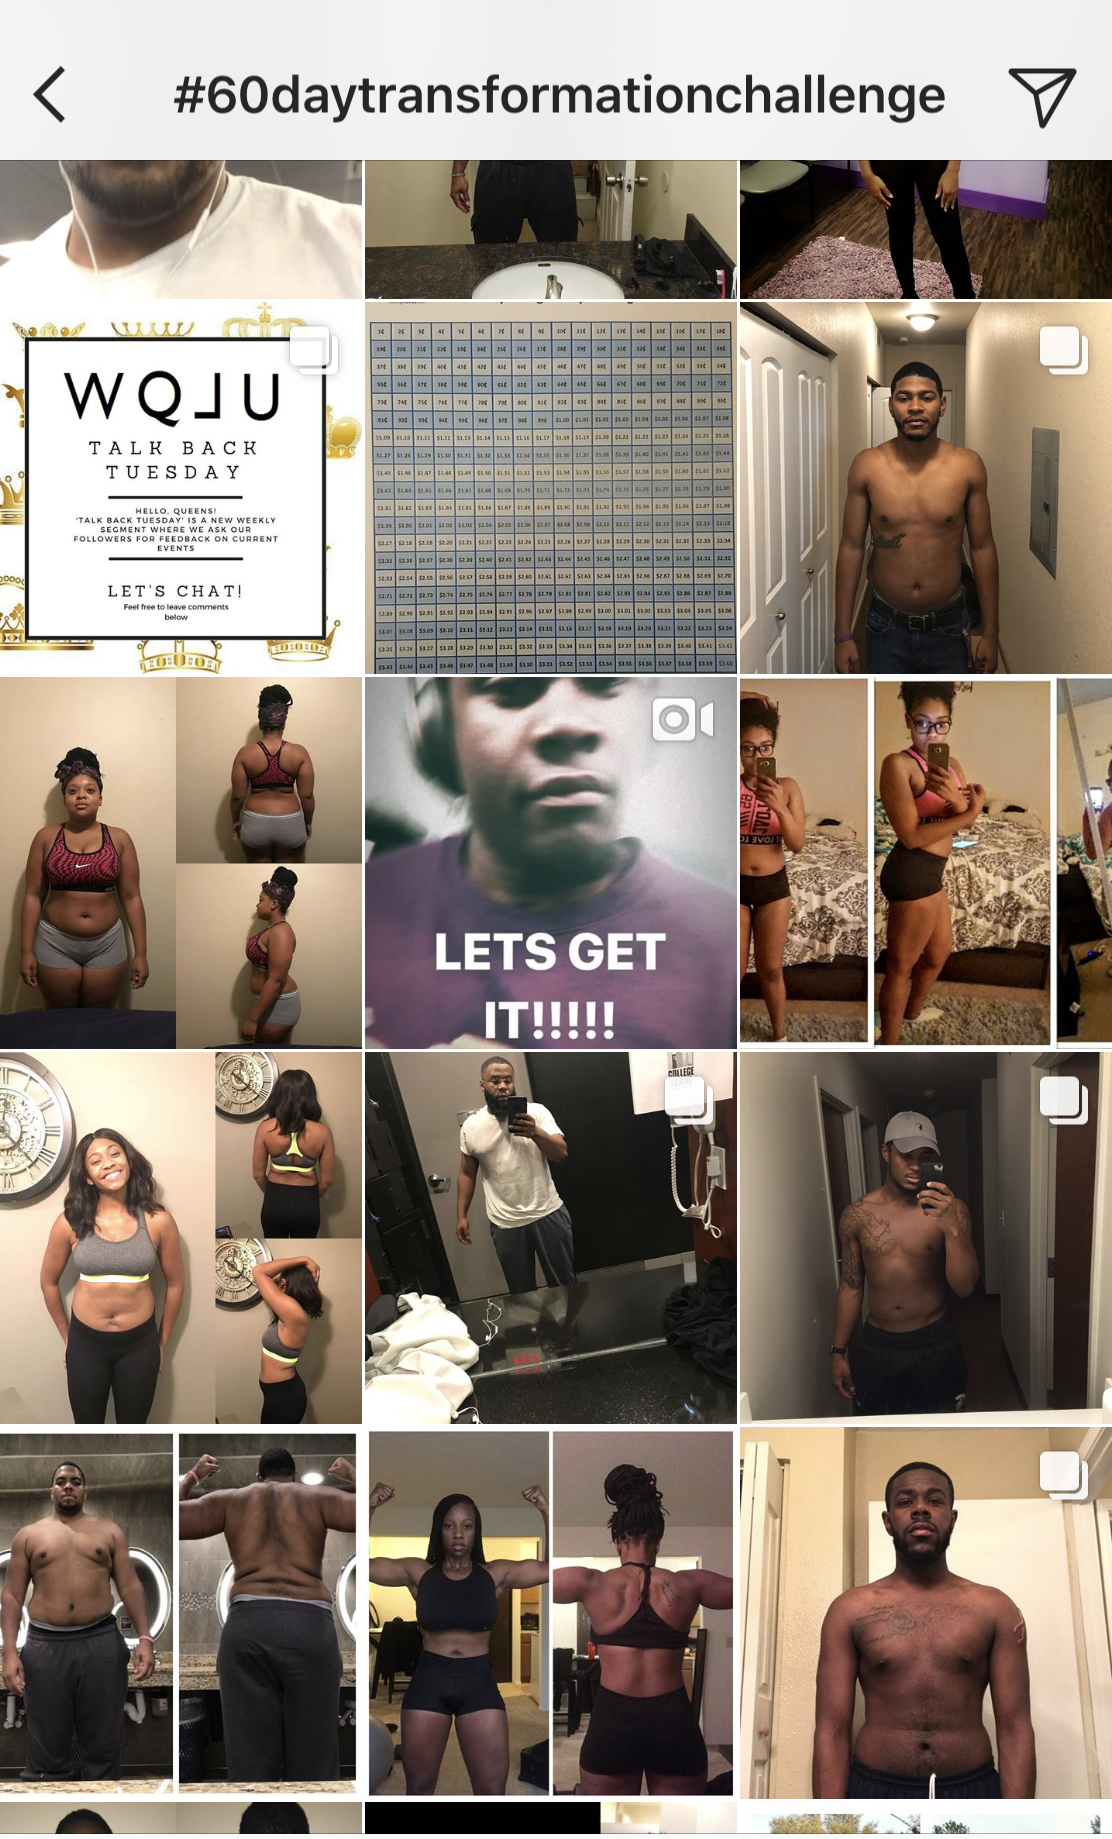 Instagram users respond to Keyon Clinton's challenge to focus on health and wellness for 60 days as part of his #60daytransformationchallenge.